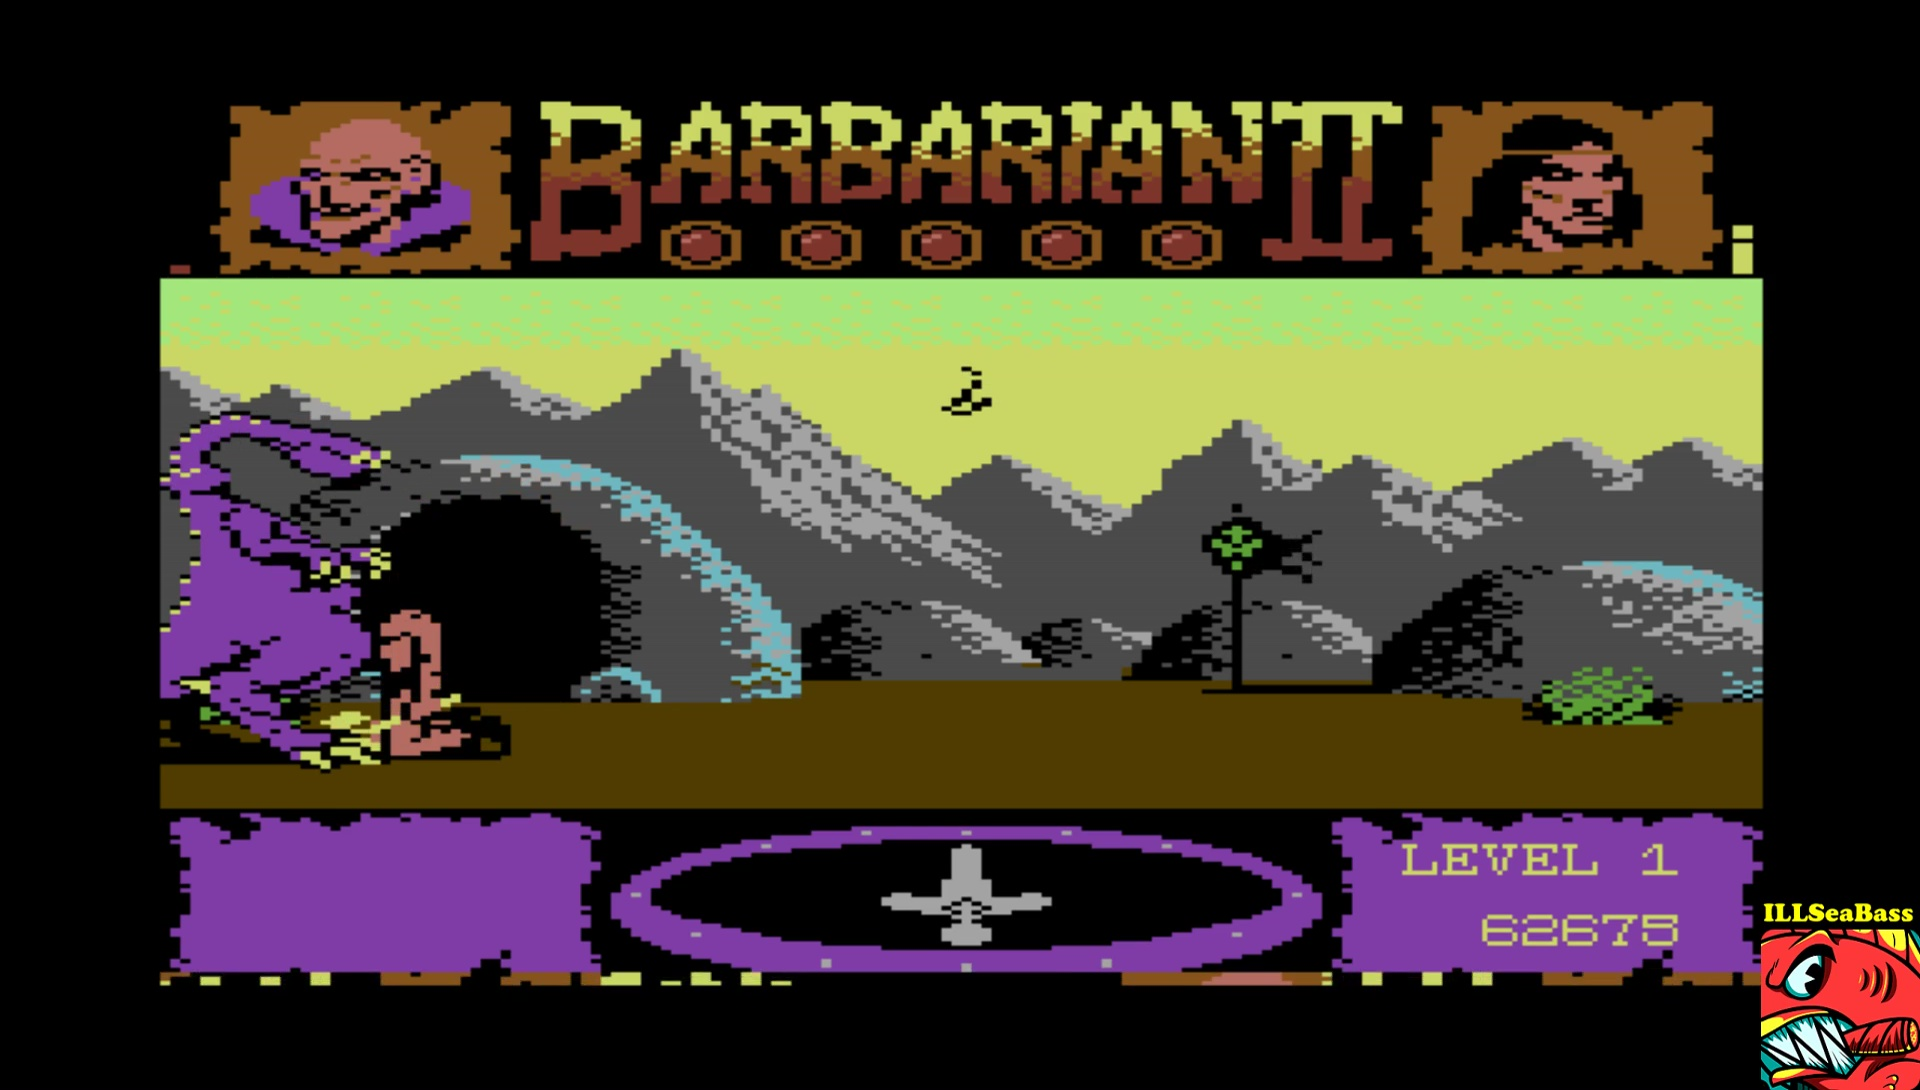 ILLSeaBass: Barbarian II (Commodore 64 Emulated) 62,675 points on 2017-04-15 22:22:09